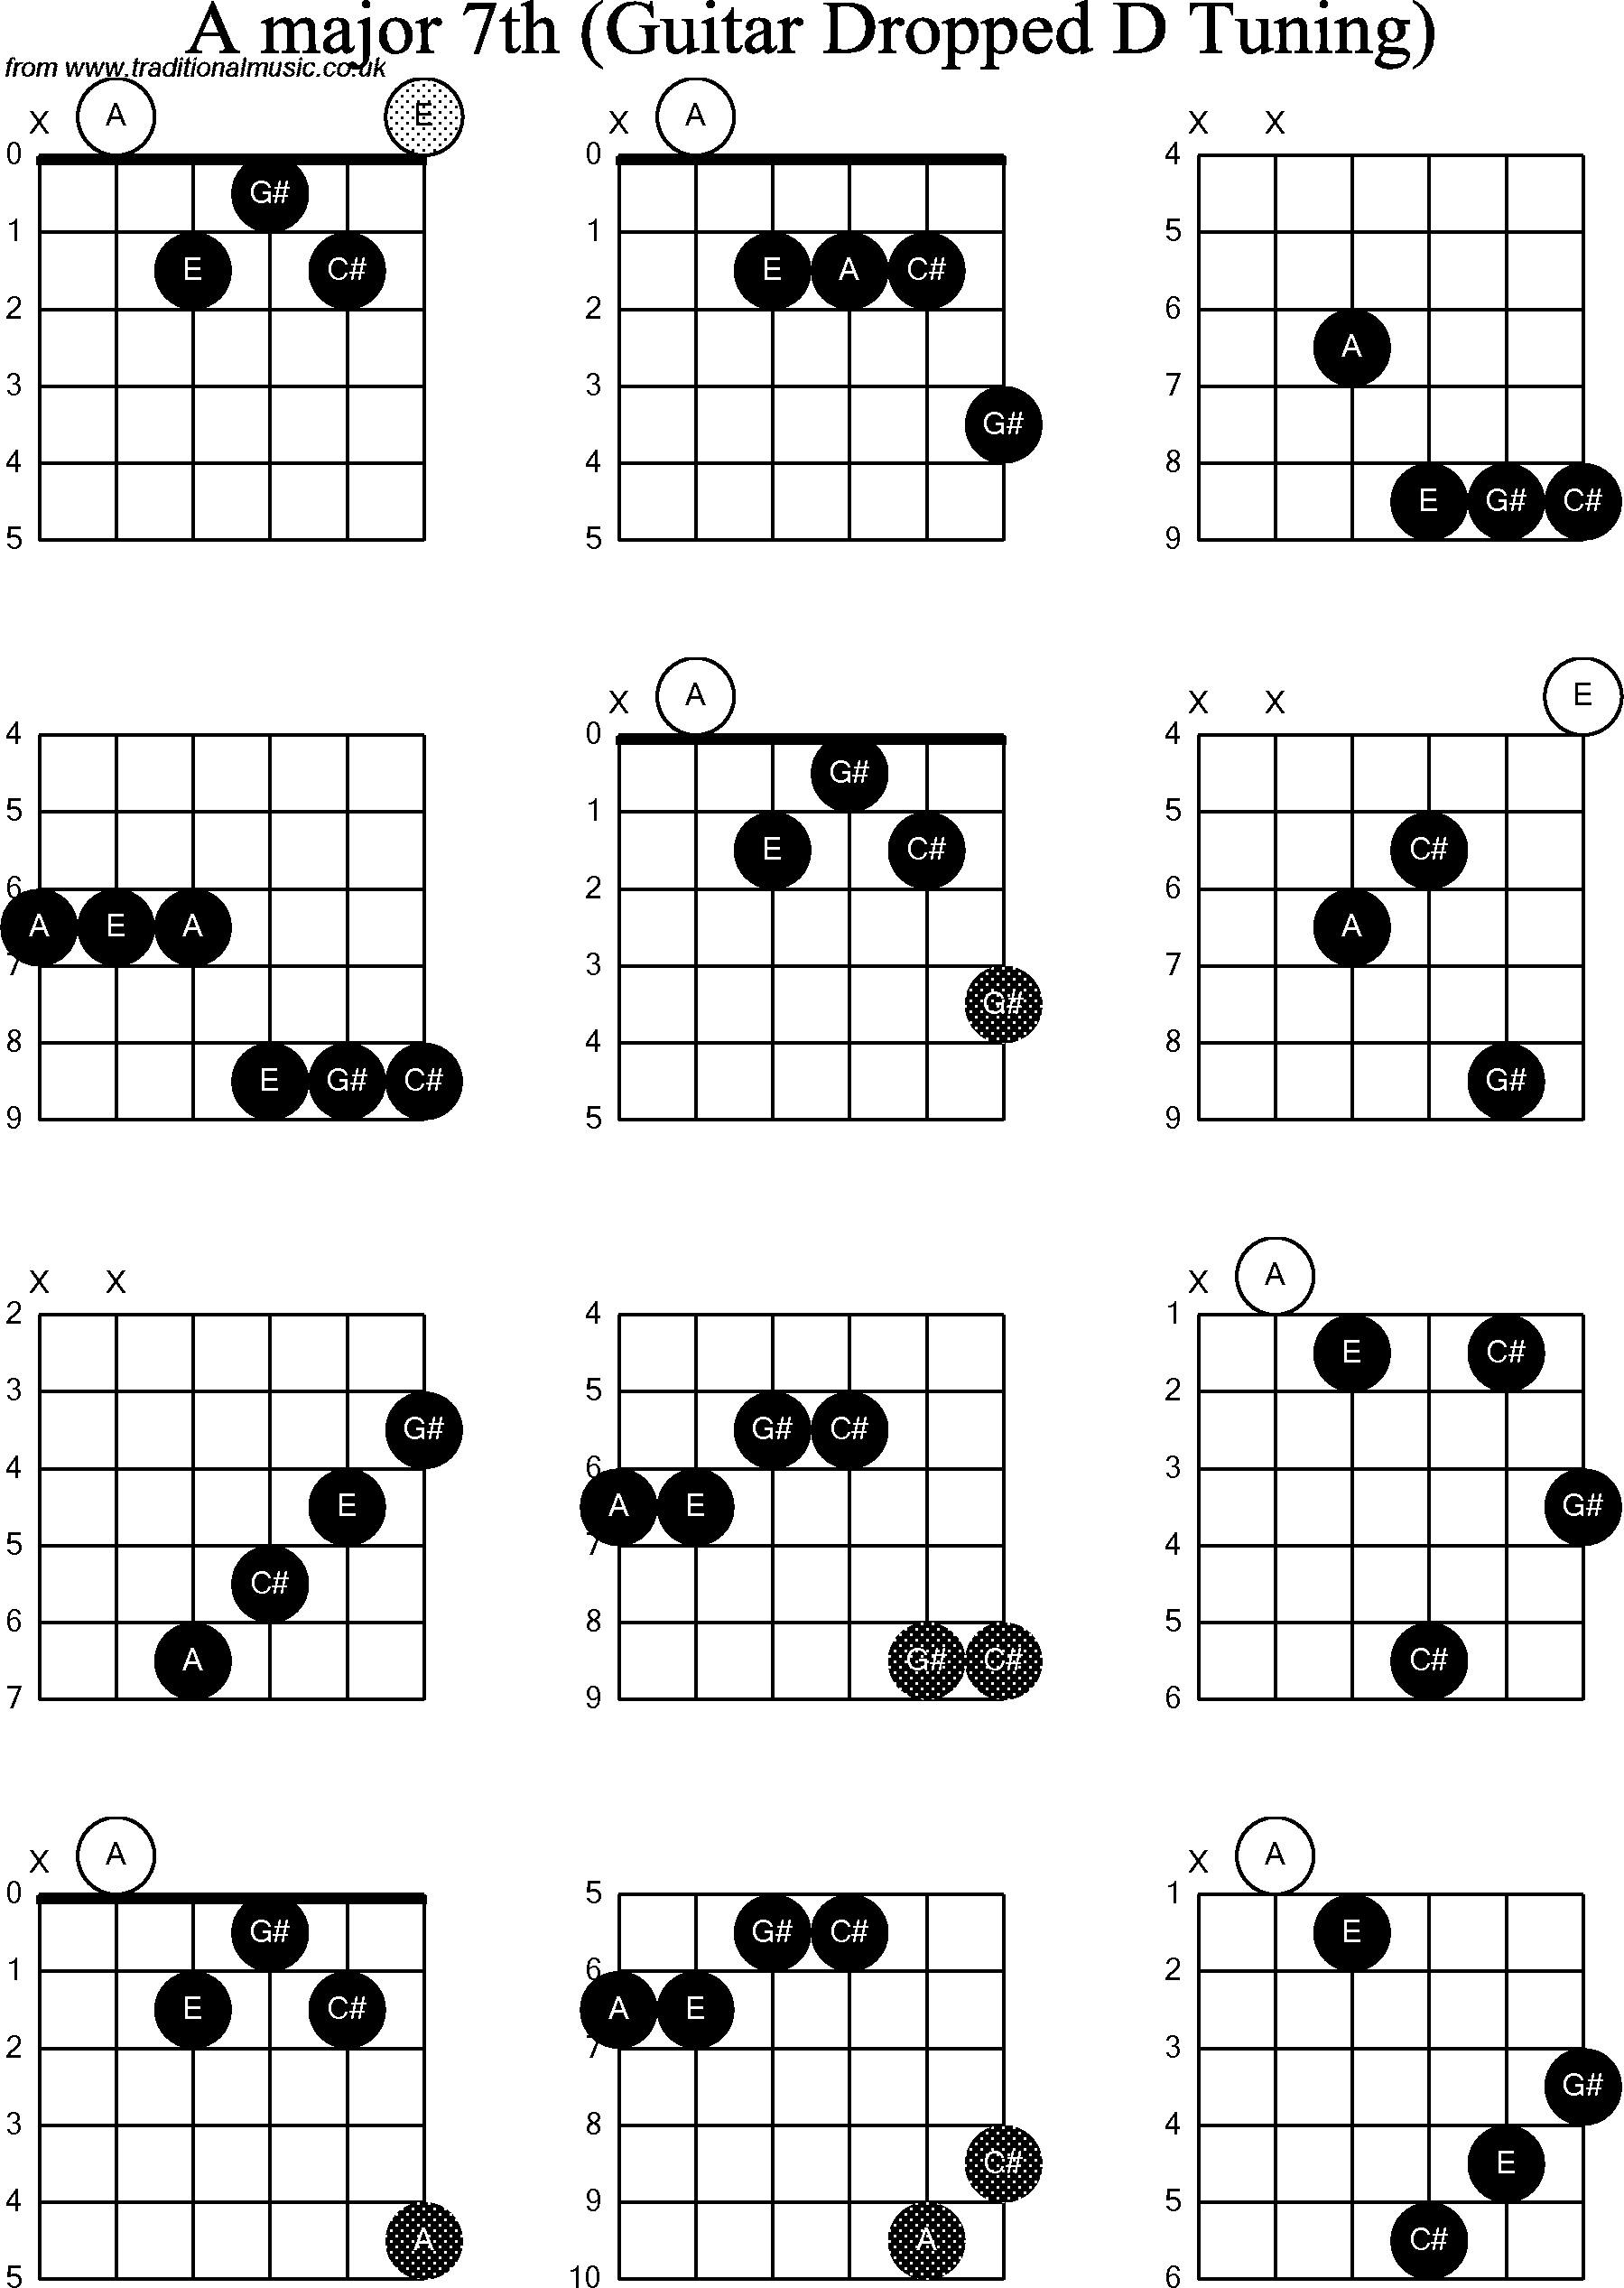 Chord Diagrams For Dropped D Guitardadgbe A Major7th